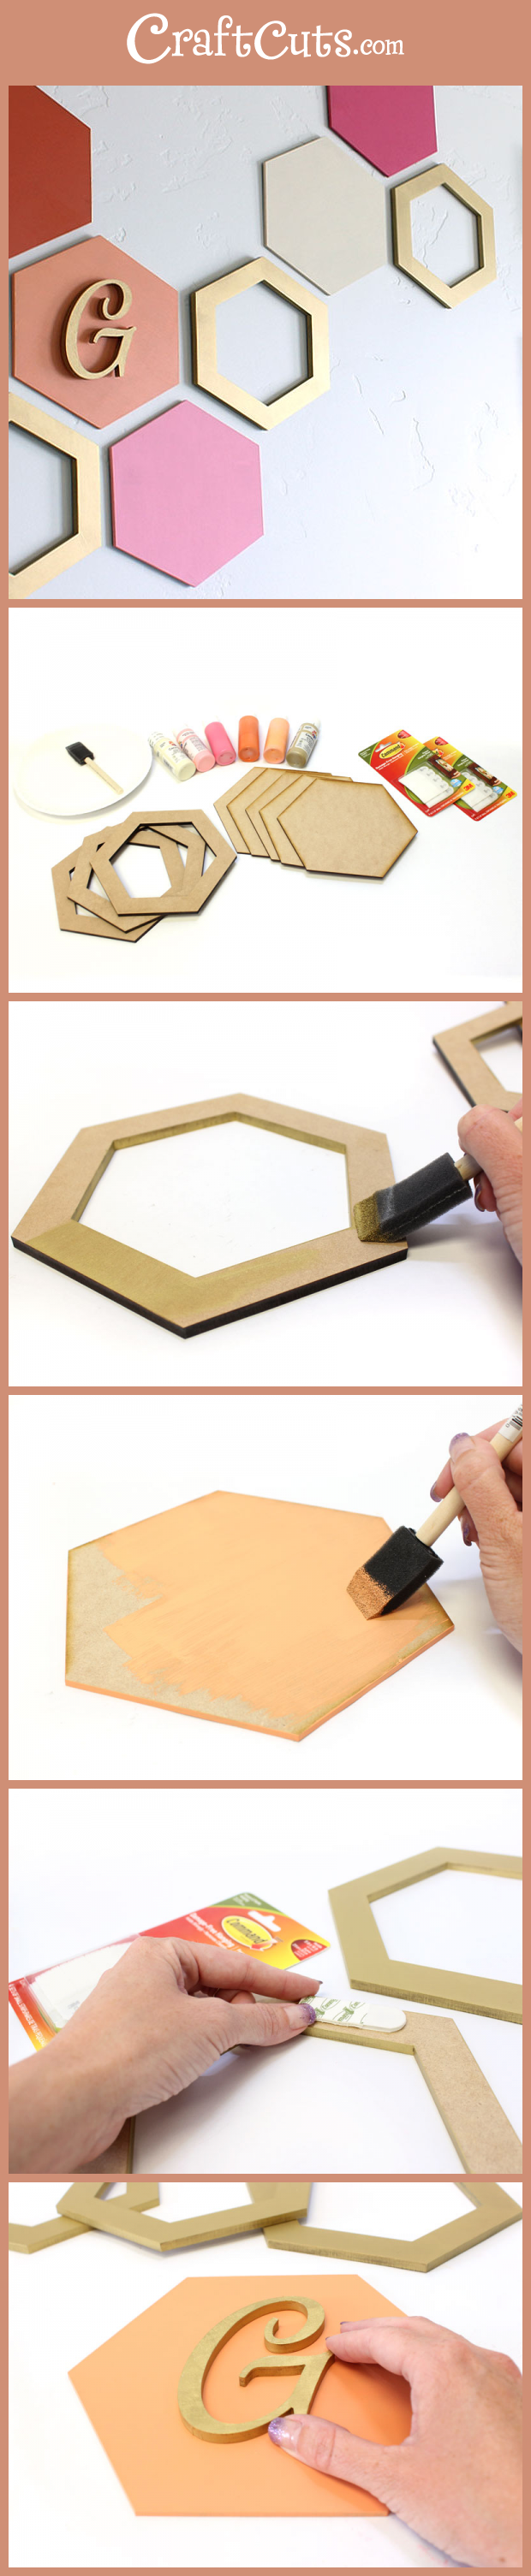 Simple hexagon wall art geometric wood shapes craftcuts